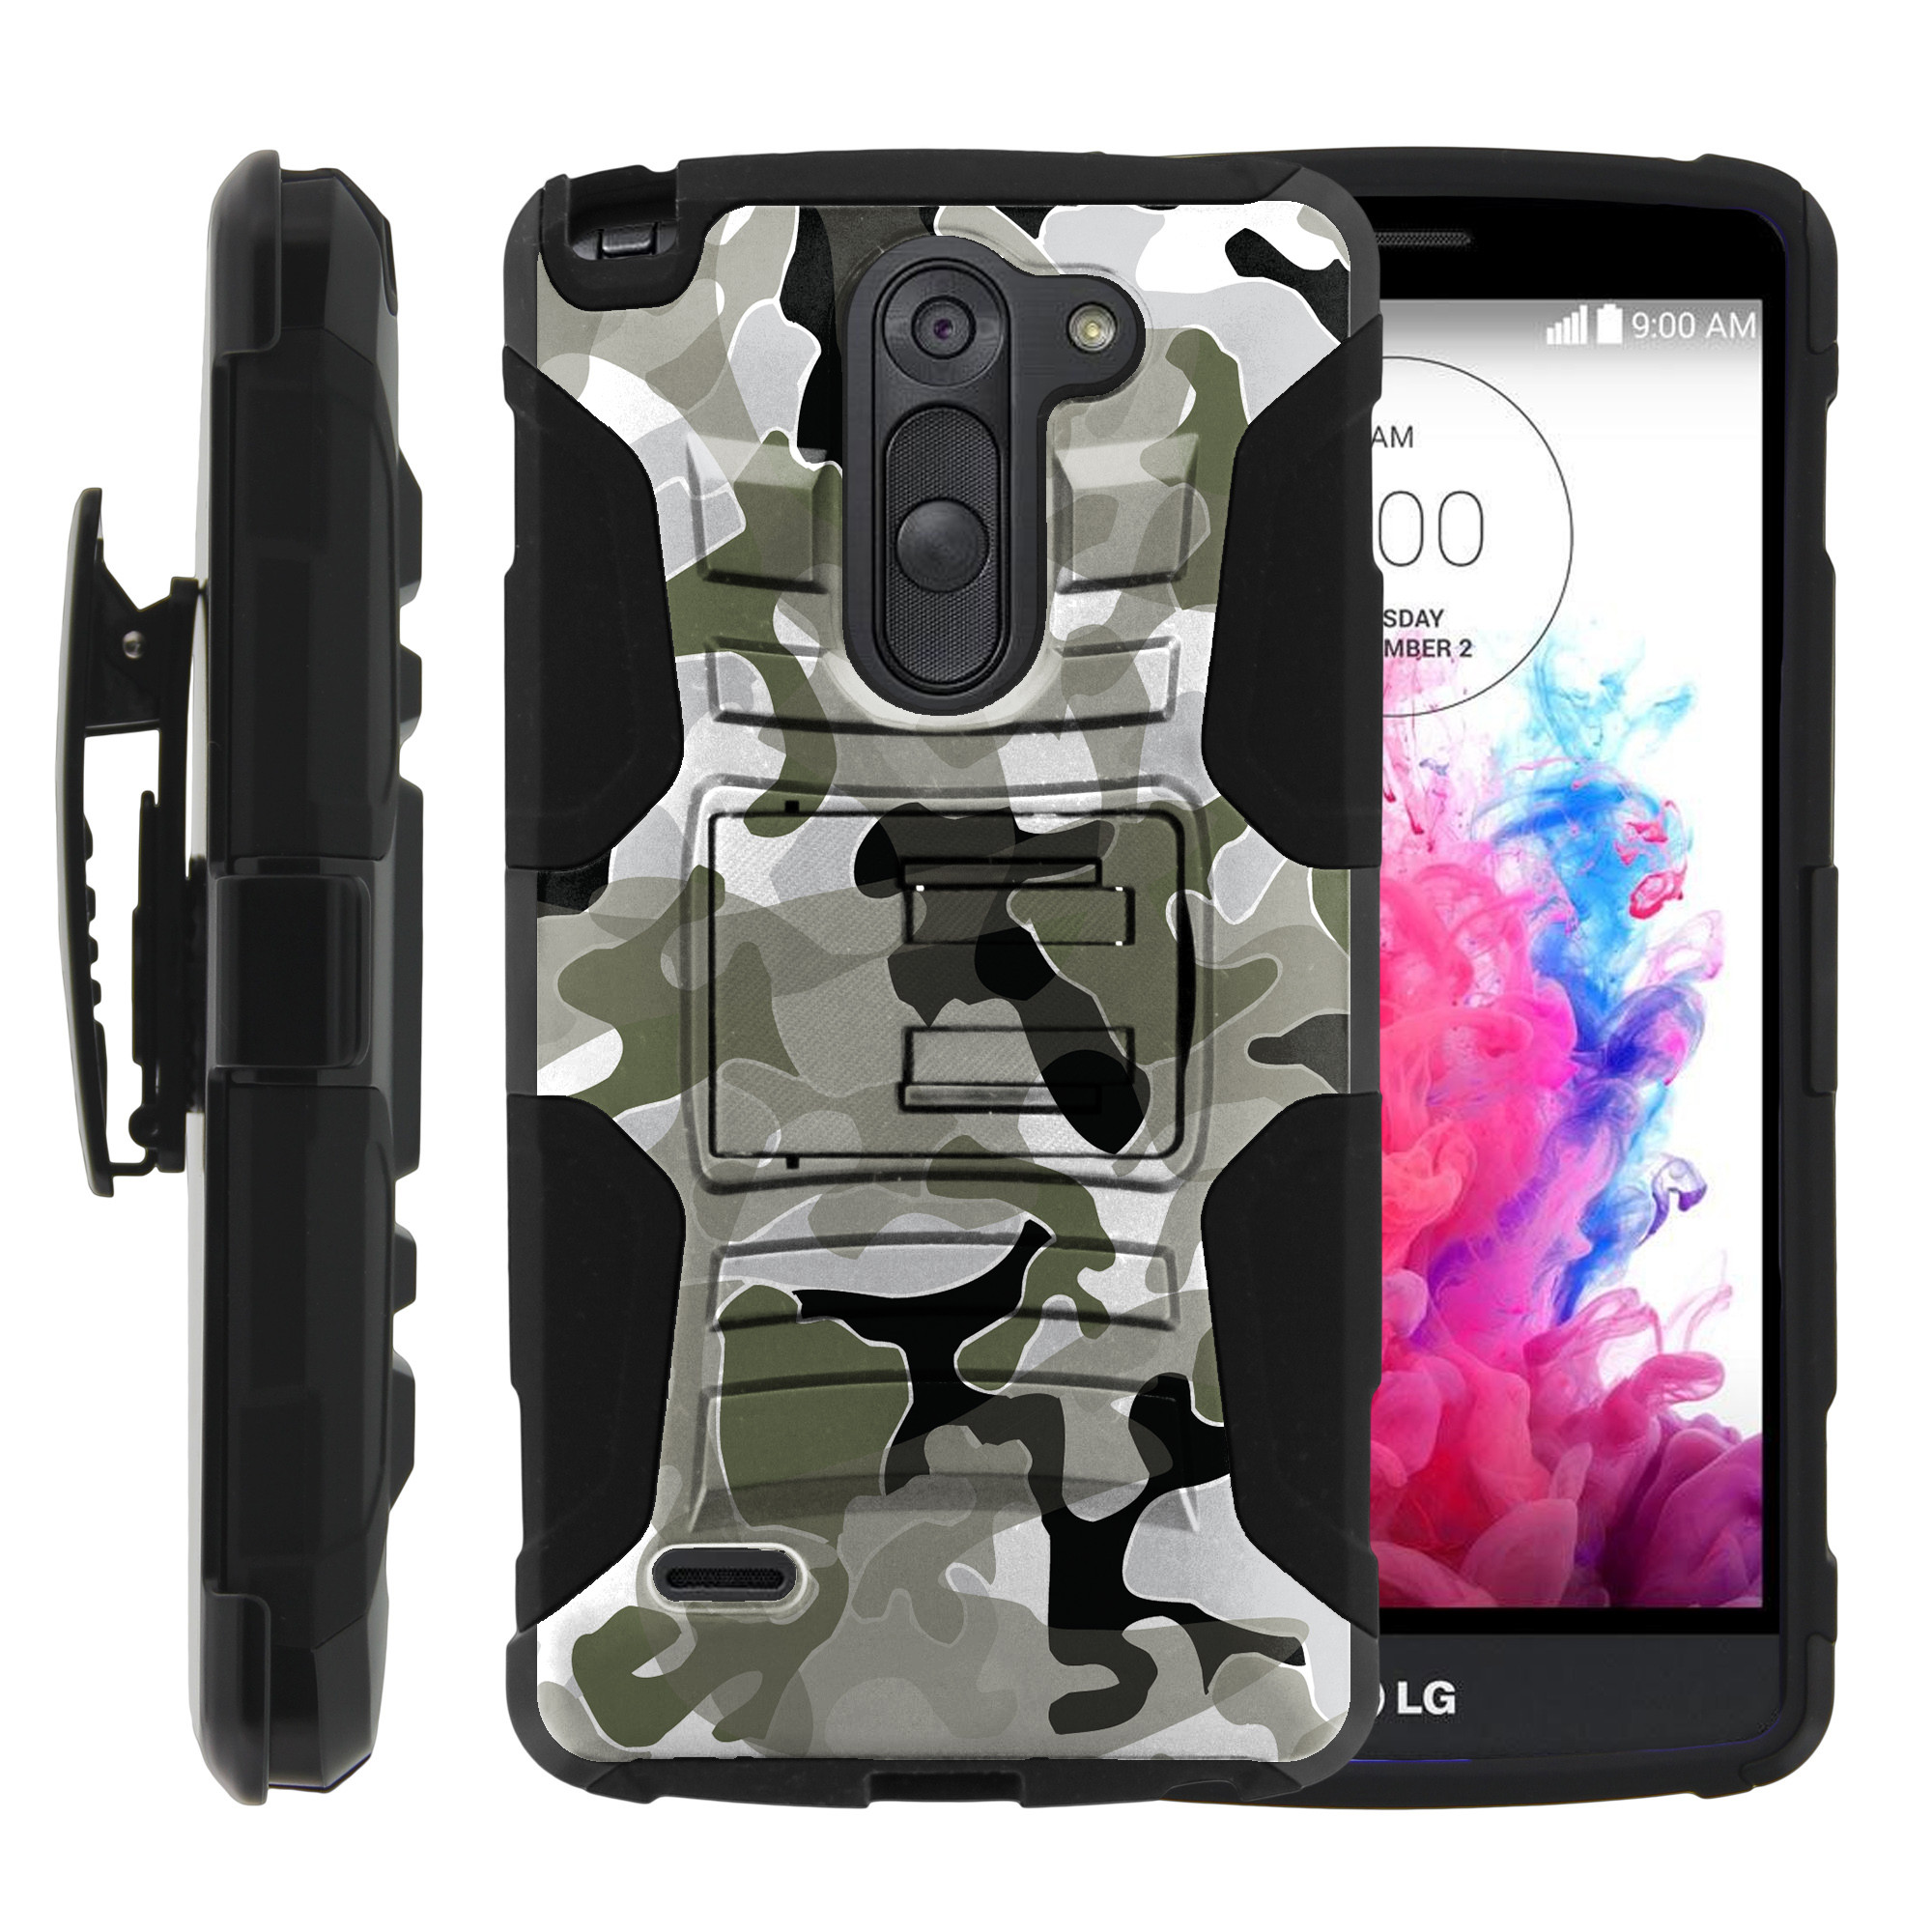 LG G3 Stylus Case | LG D690 Case | G3 Stylus Holster Case [ Clip Armor ] Rugged Case with Kickstand + Holster - Swamp Camouflage